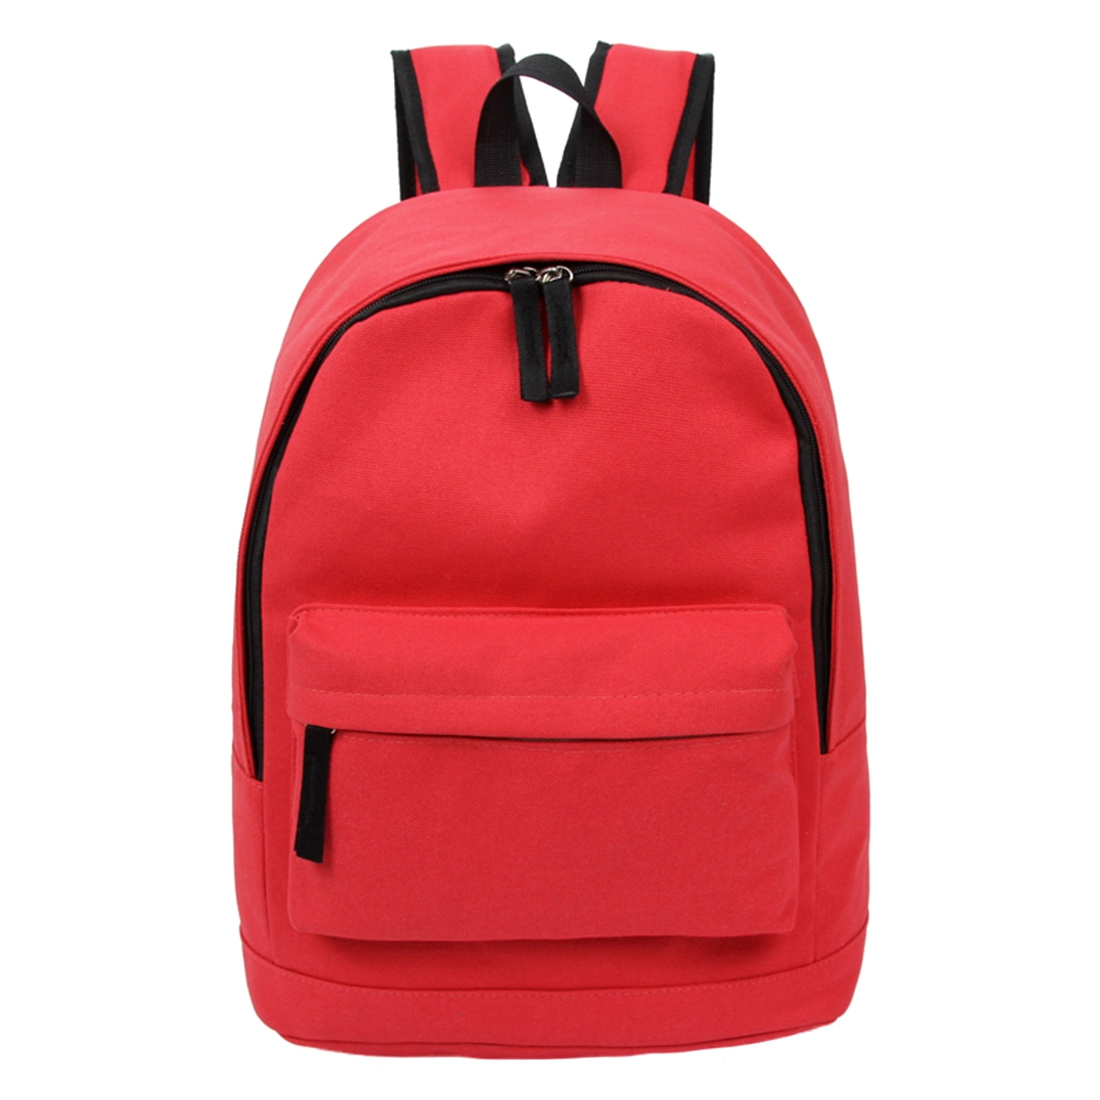 5 pcs of Korea Style Fashion Backpack for Men and Women Preppy Style Soft Back Pack Unisex School Bags Big Capacity Canvas Bag korea style fashion backpacks for men and women waterproof preppy style soft backpack unisex school bags big capacity bag xa893b